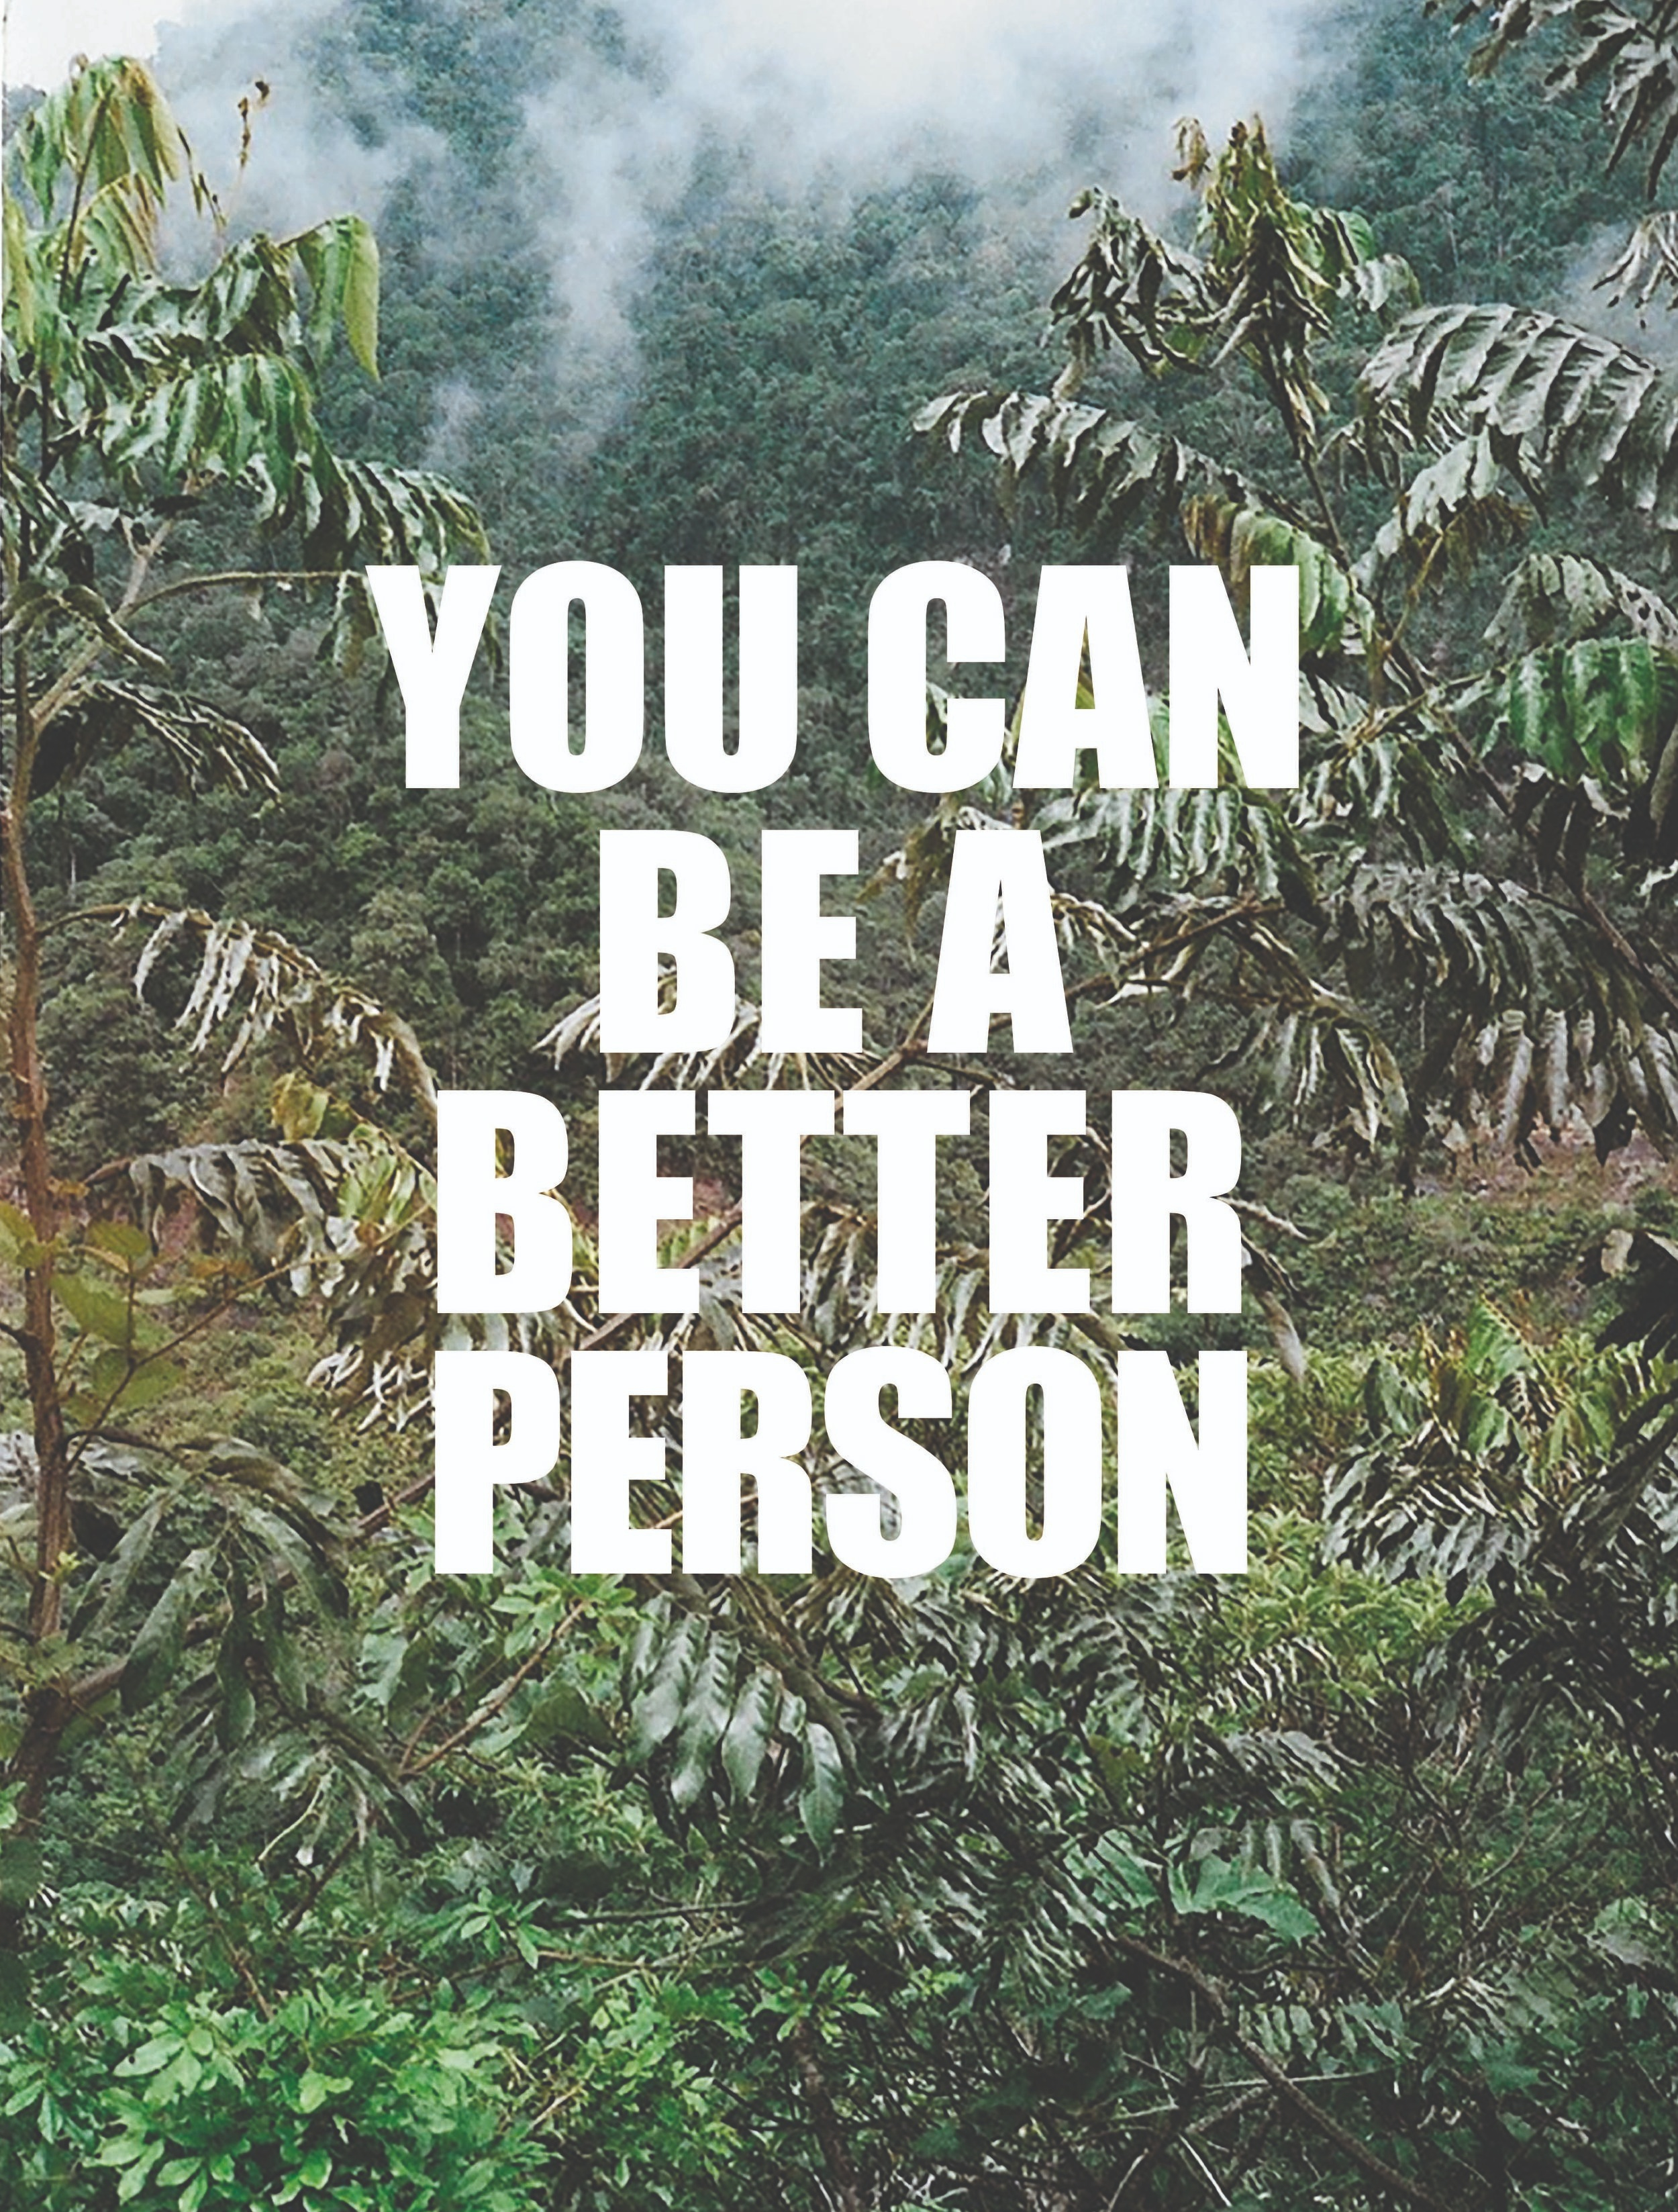 Better Person, Promises From Paradise 2018 - photography and graphic